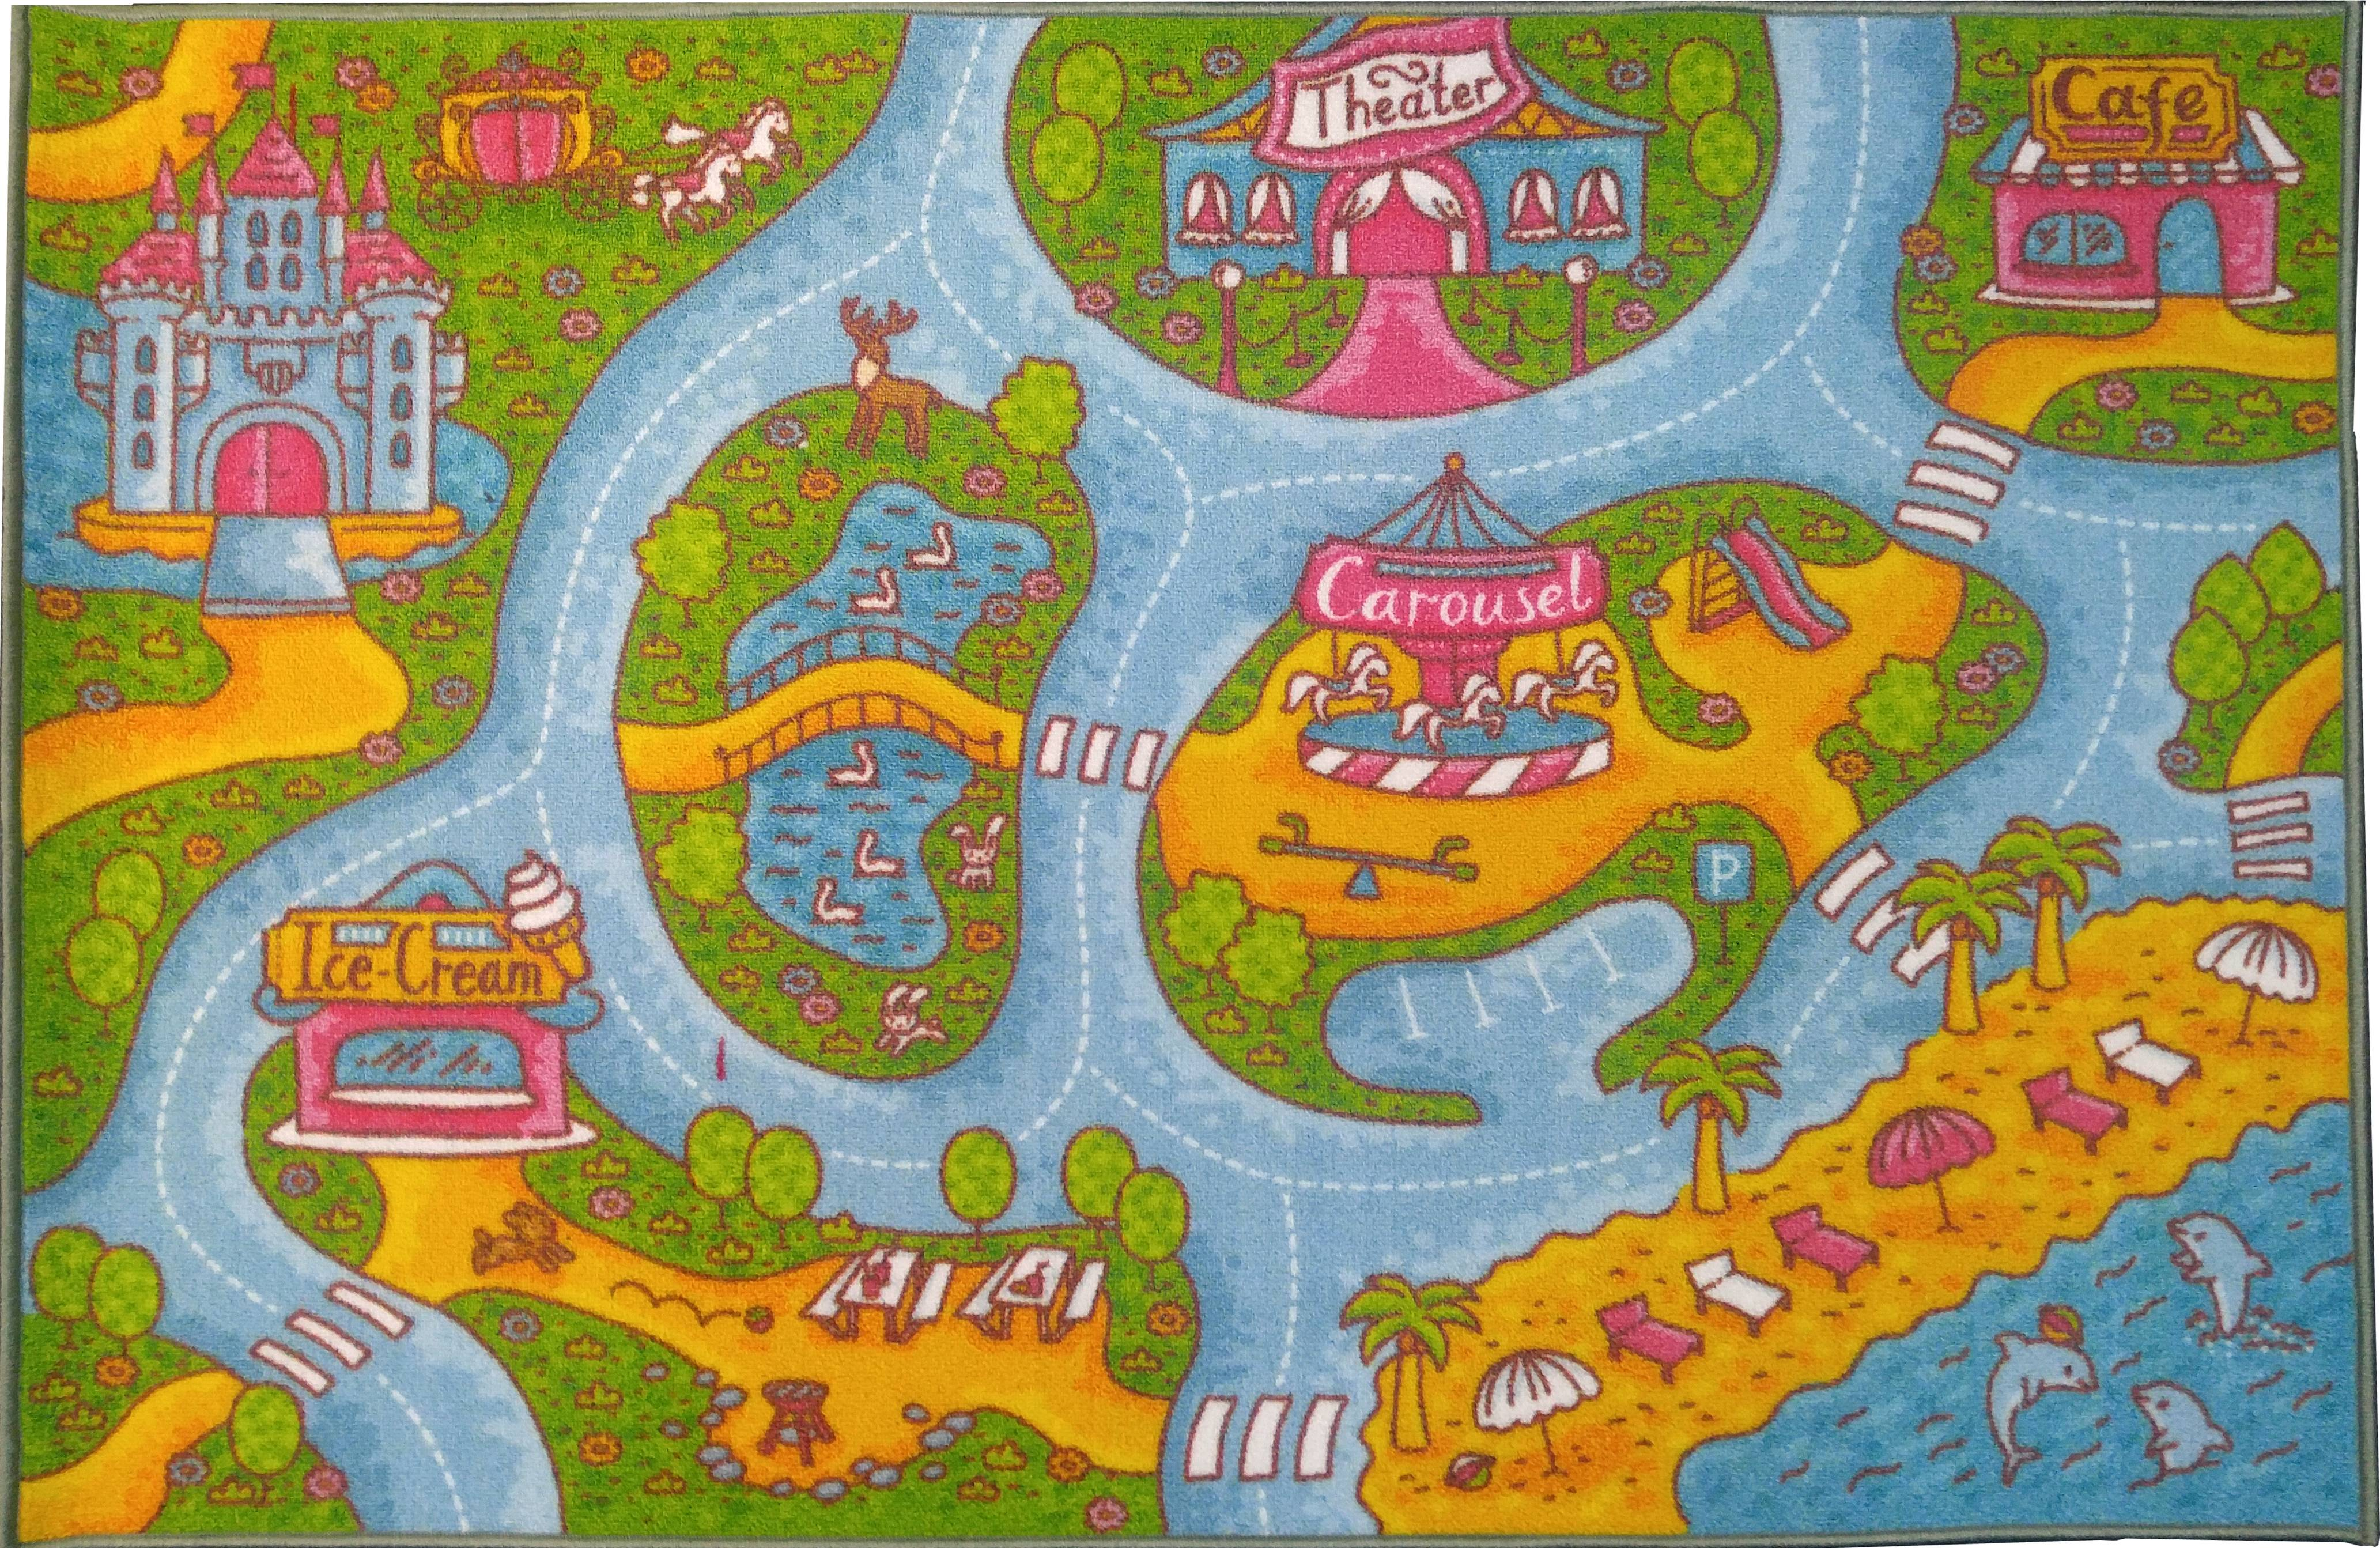 KC Cubs Playtime Collection Girls Road Map Multicolor Polypropylene  Educational Area Rug (5u00270